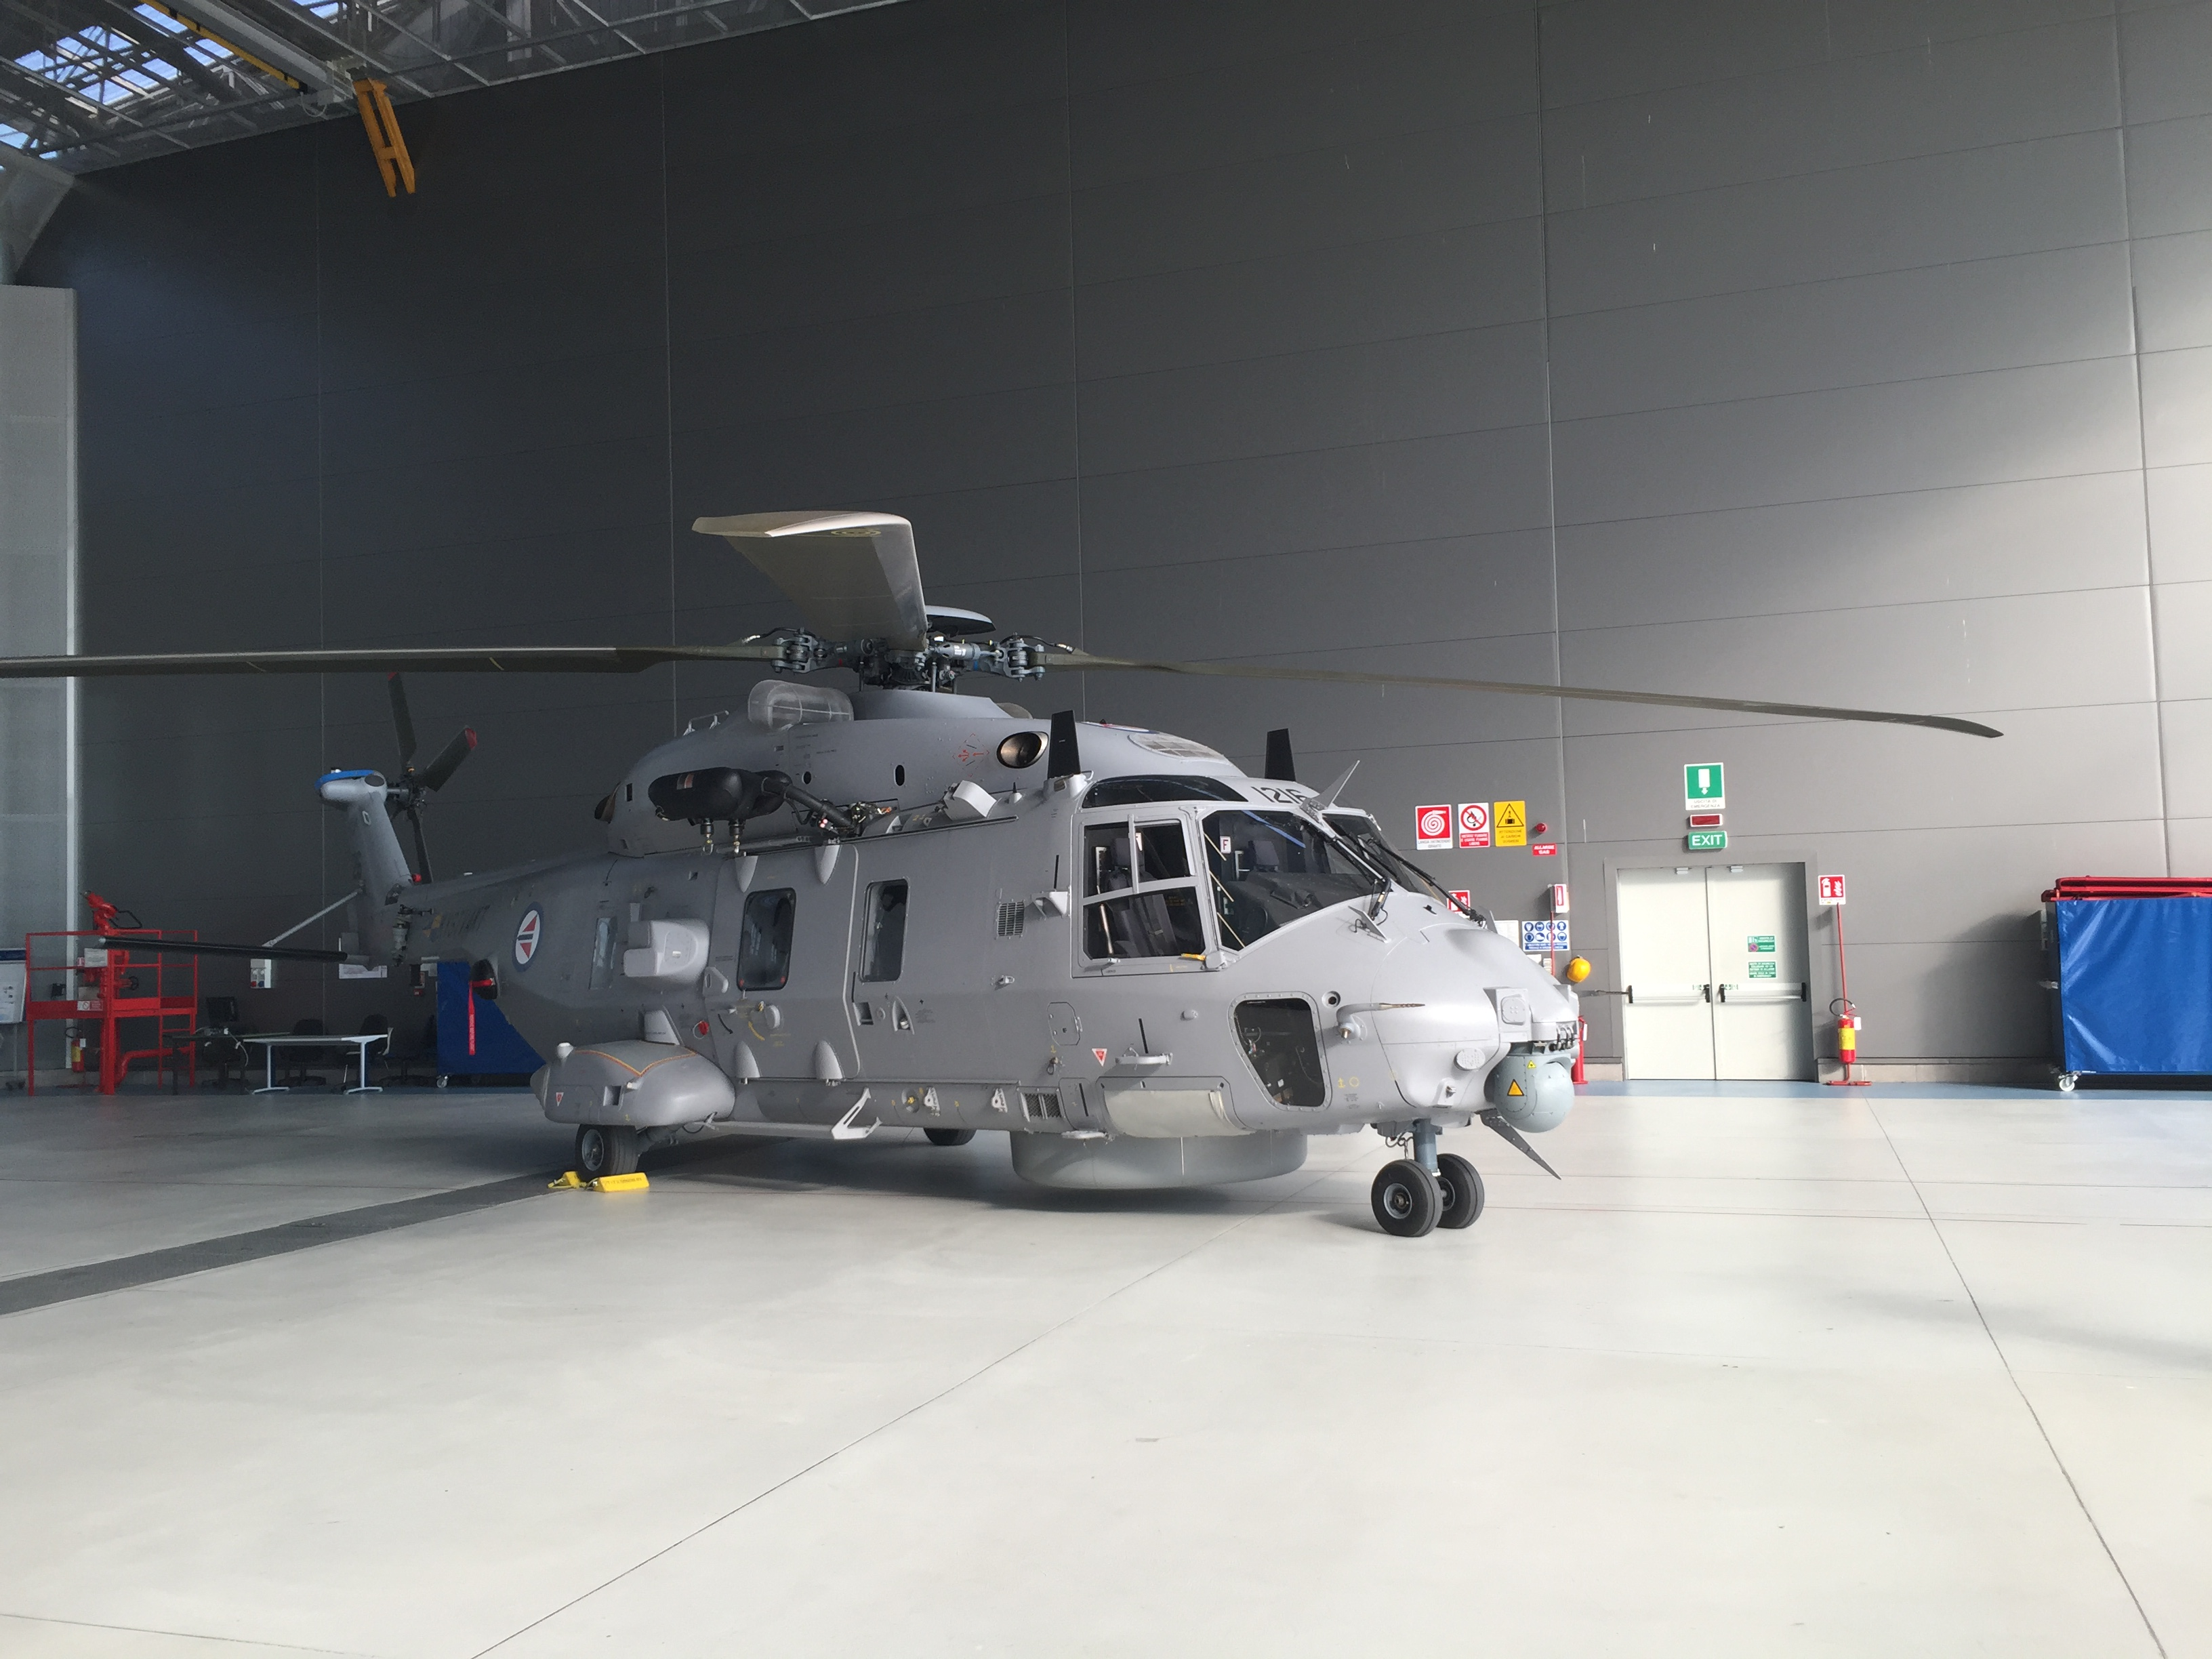 NHI successfully completed the test campaign of the self-protection suite of the Norwegian NH90. The aircraft NH90 NNWN01 prototype was manned by Finmeccanica Helicopter Division flight test team (Test Pilot Roger Mowbray and Flight Test Engineer Fabrizio Santarossa) and supported by a multi-national, multi-disciplined team from several organisations.